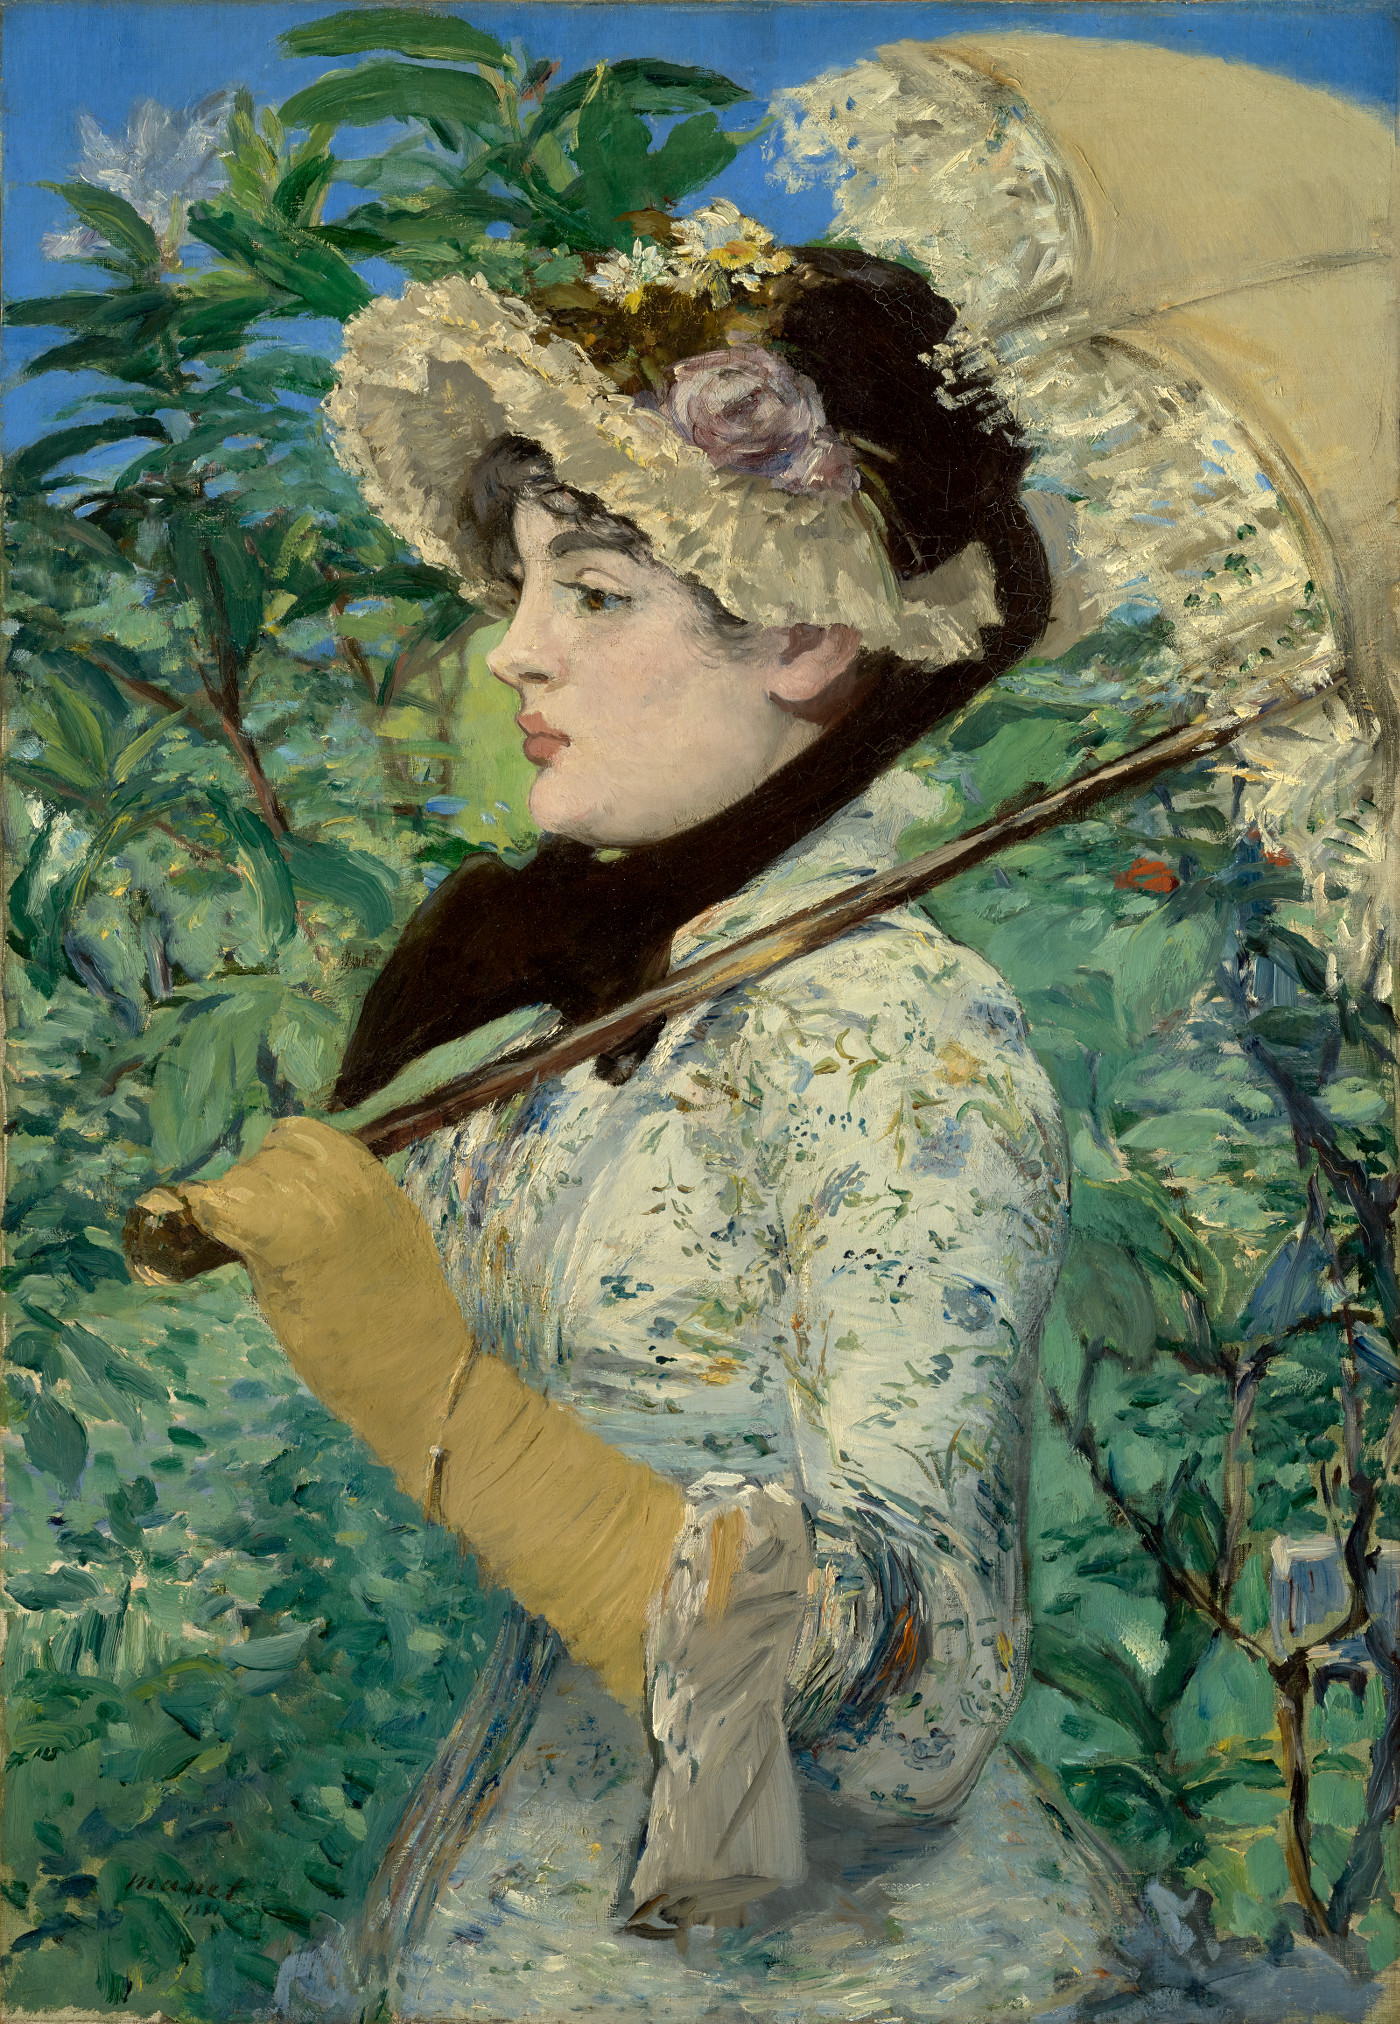 Woman with a parasol by Édouard Manet, 1881